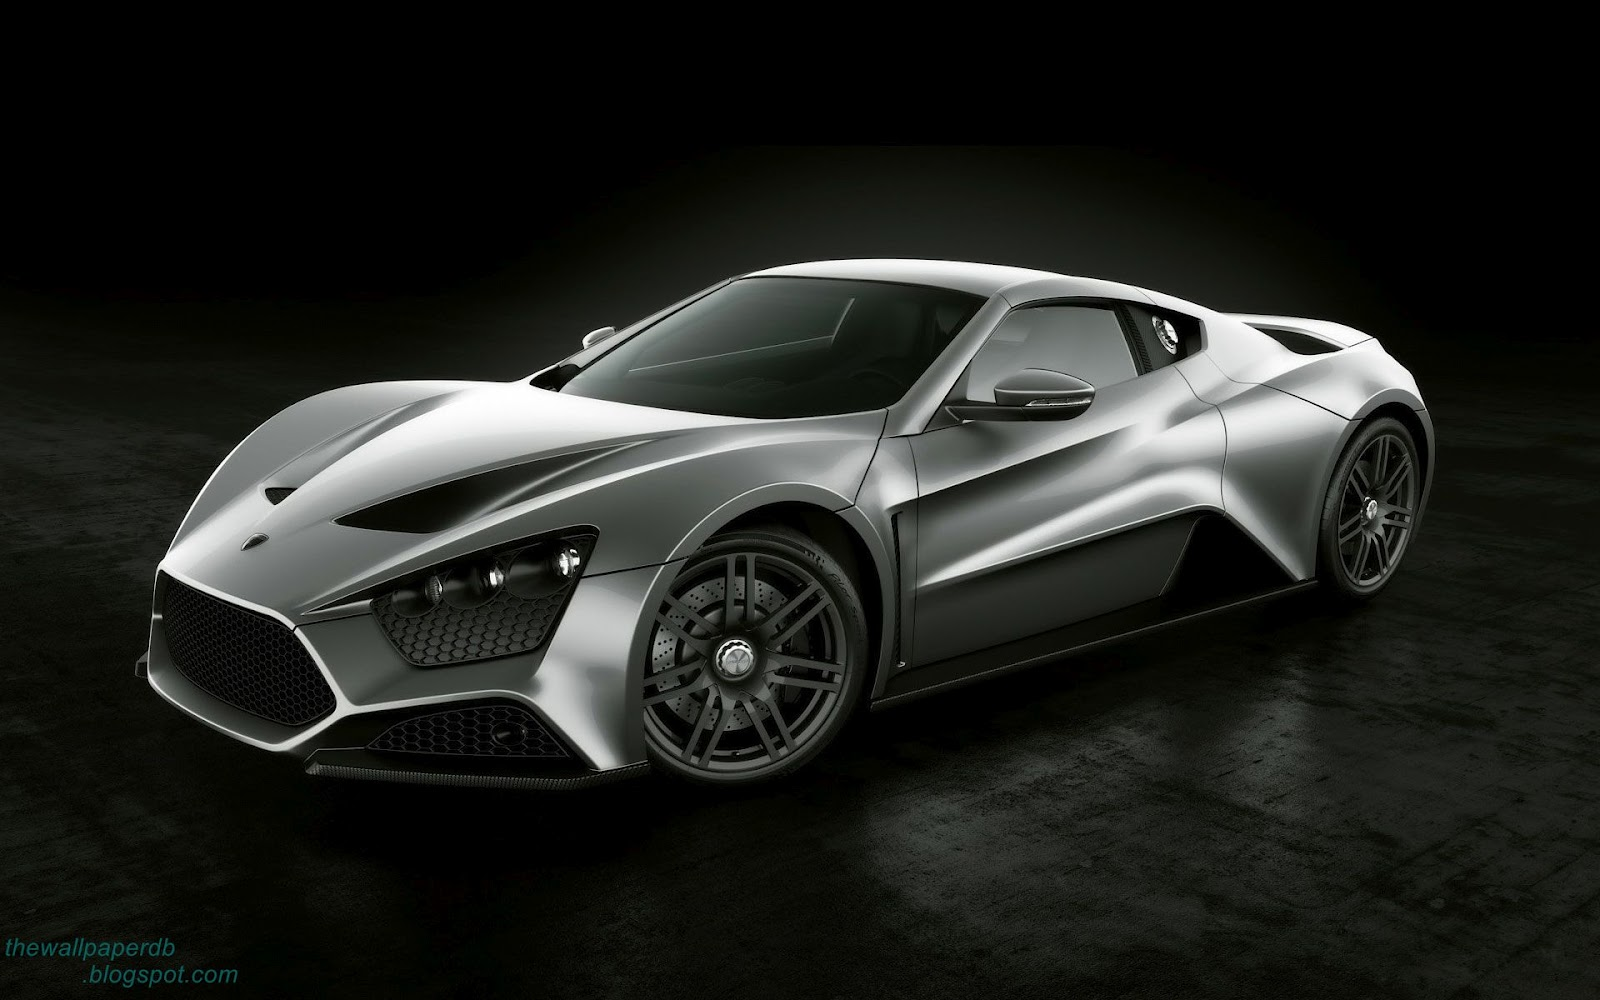 future car wallpapers download - photo #27